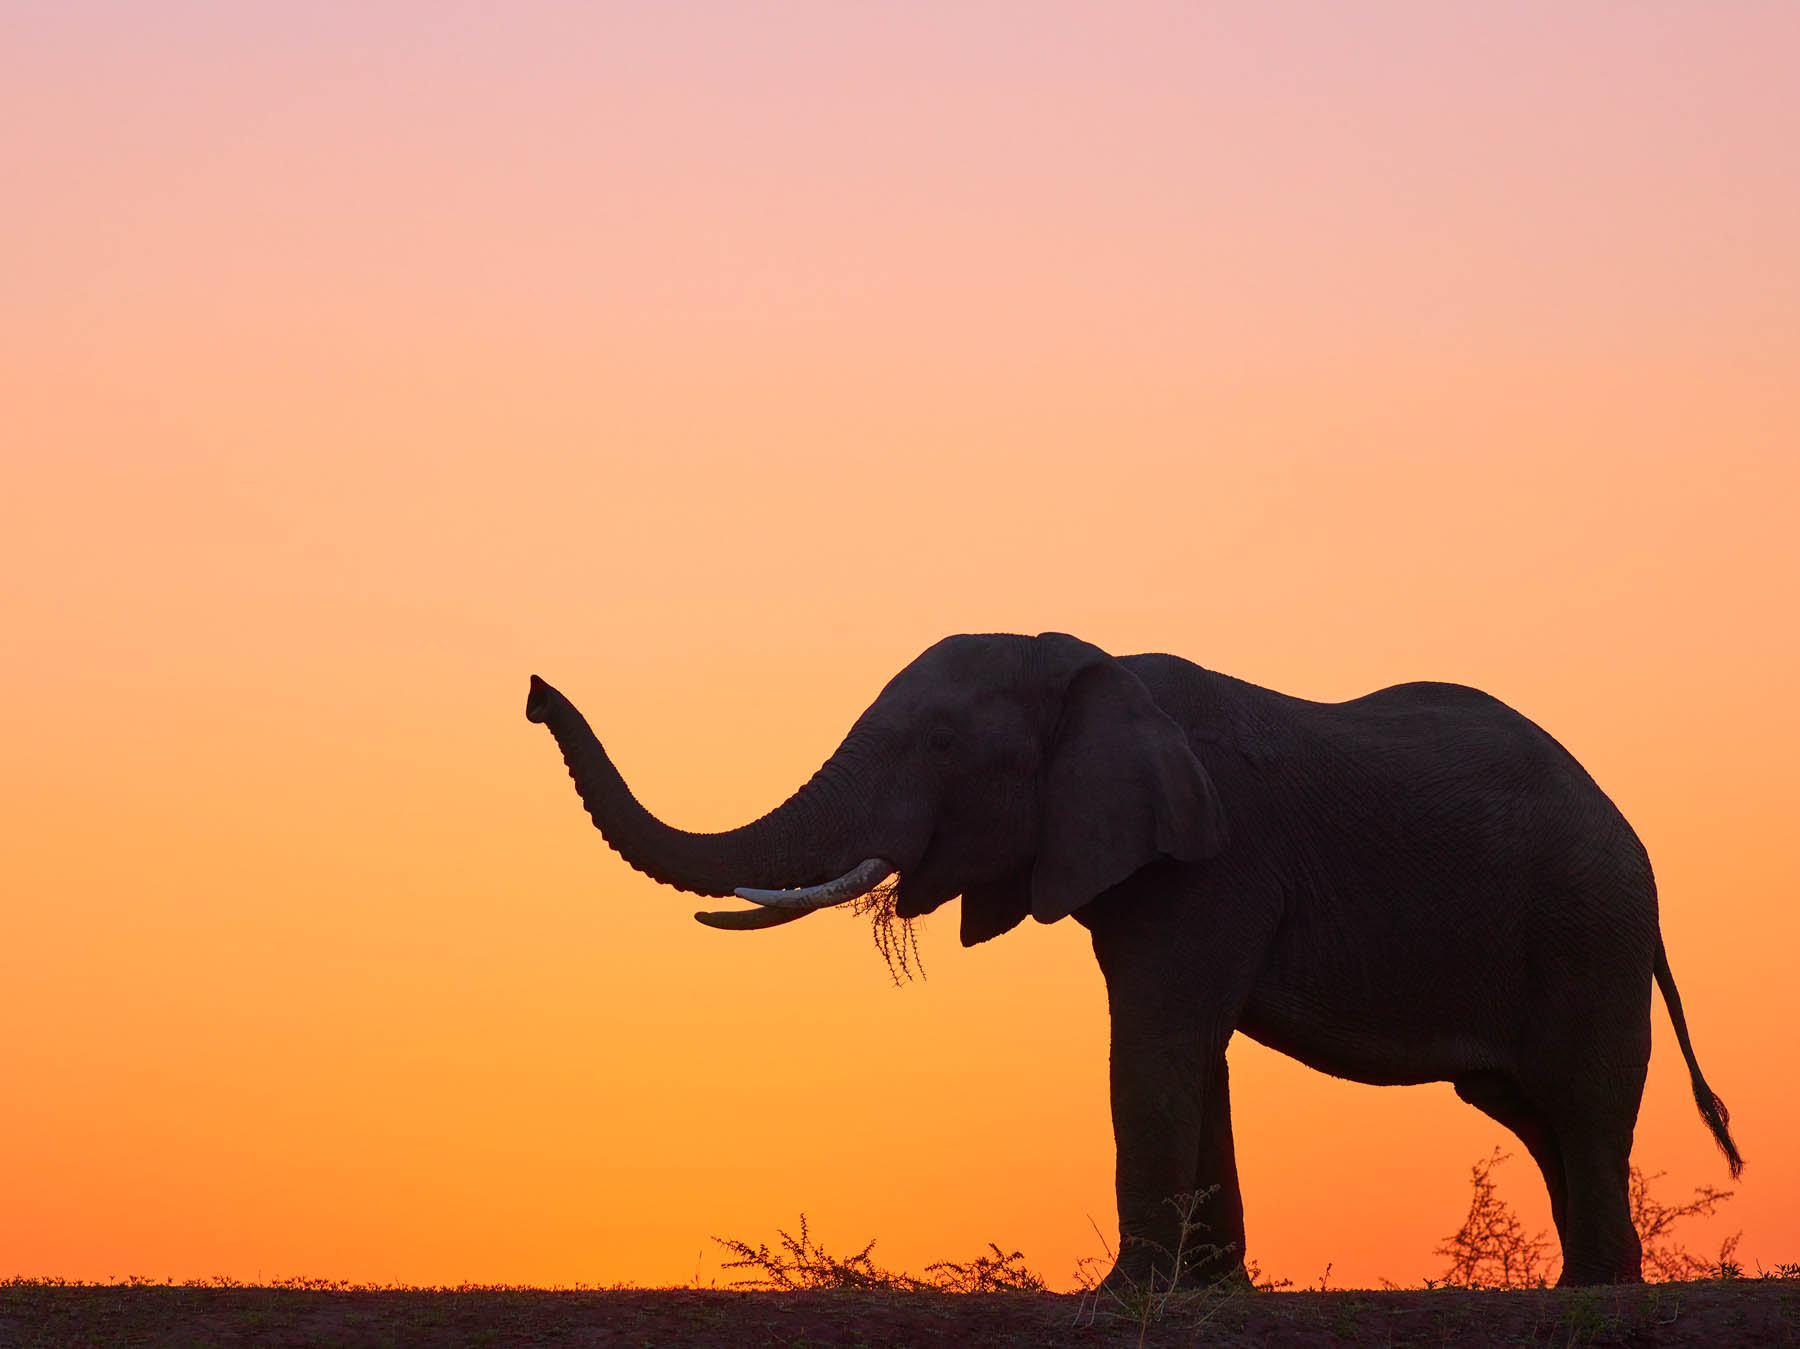 A lone elephant silhouetted against the rich sunset sky, Mashatu Game Reserve, Botswana, Africa.